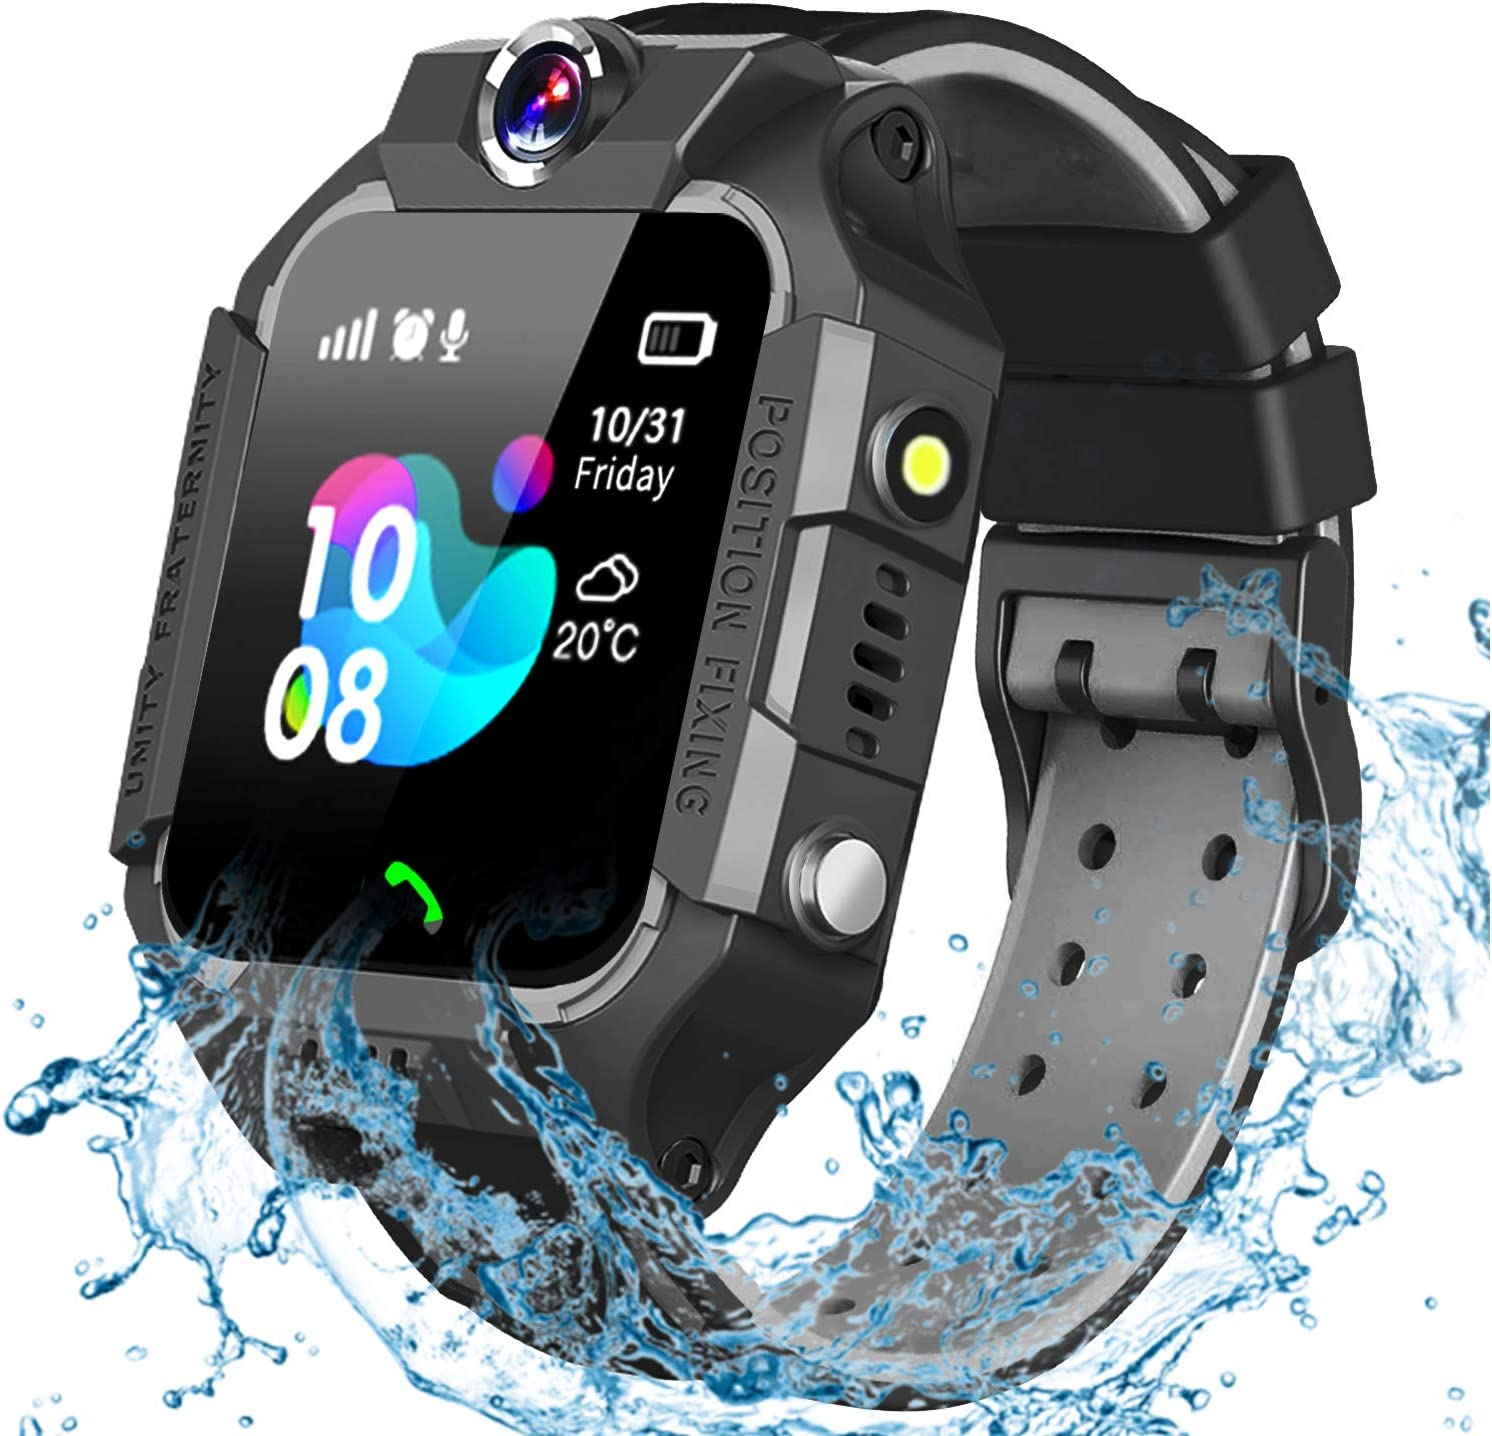 GBD Smart Watch for Kids-IP67 Waterproof Smartwatch Phone with Call Games Alarm Clock Music Video 12/24 Hr, Kids Digital Wrist Watch Stopwatch for Children Boys Girls Age 3-12 Learning Toys (Black)